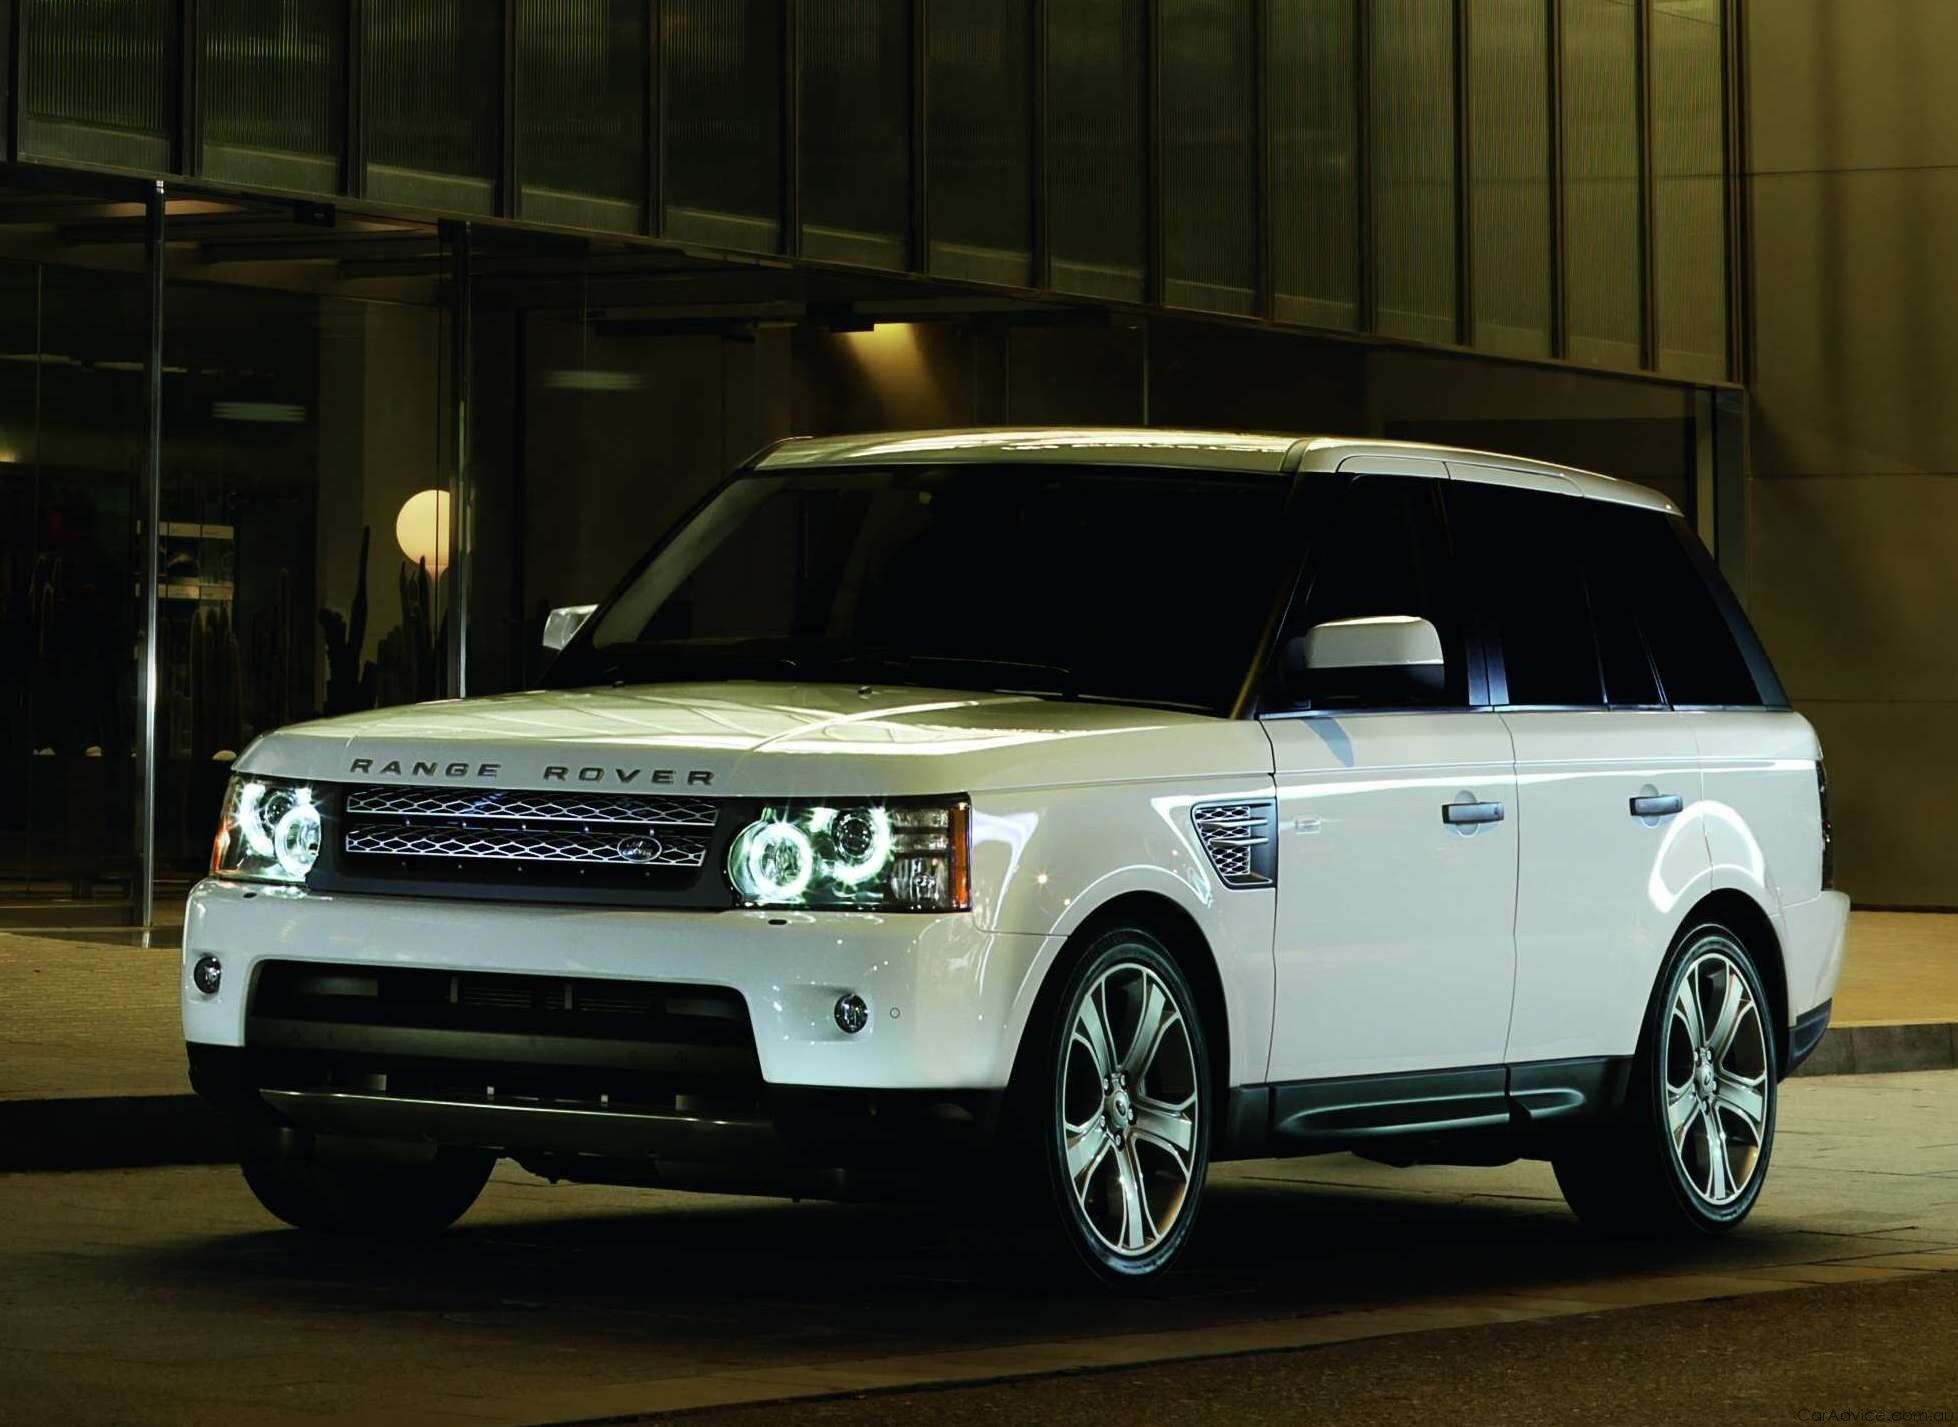 Photos of land rover range rover resimleri car wallpaper